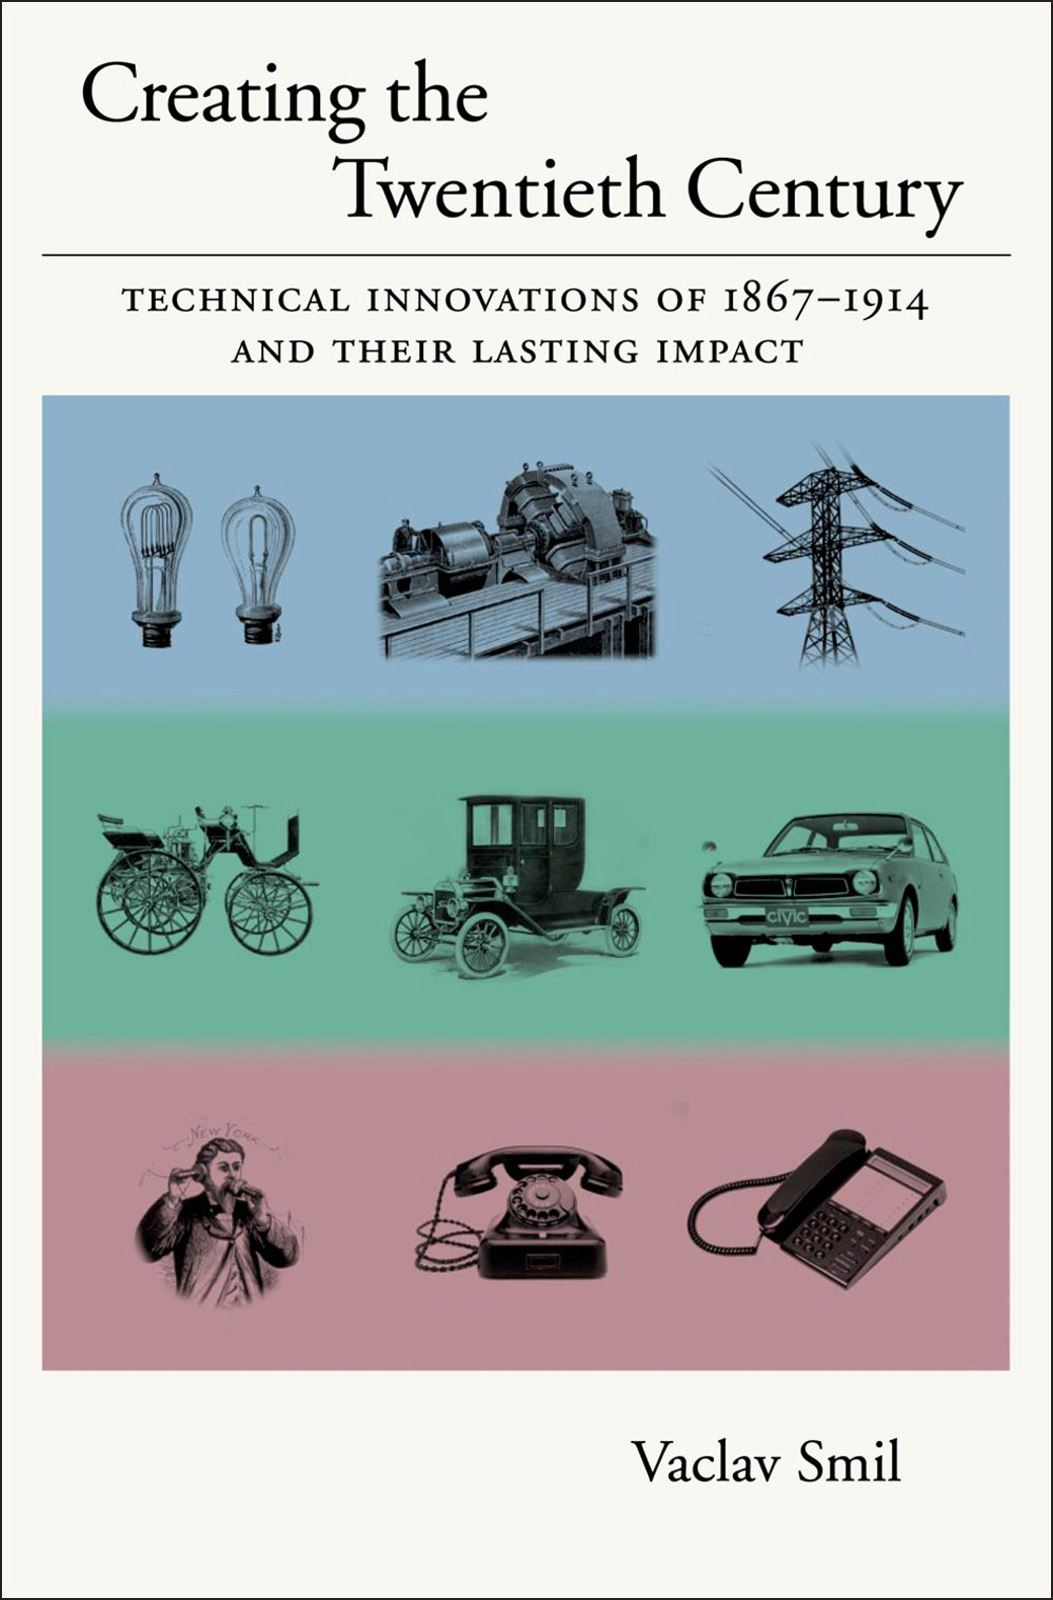 Creating the Twentieth Century : Technical Innovations of 1867-1914 and Their Lasting Impact